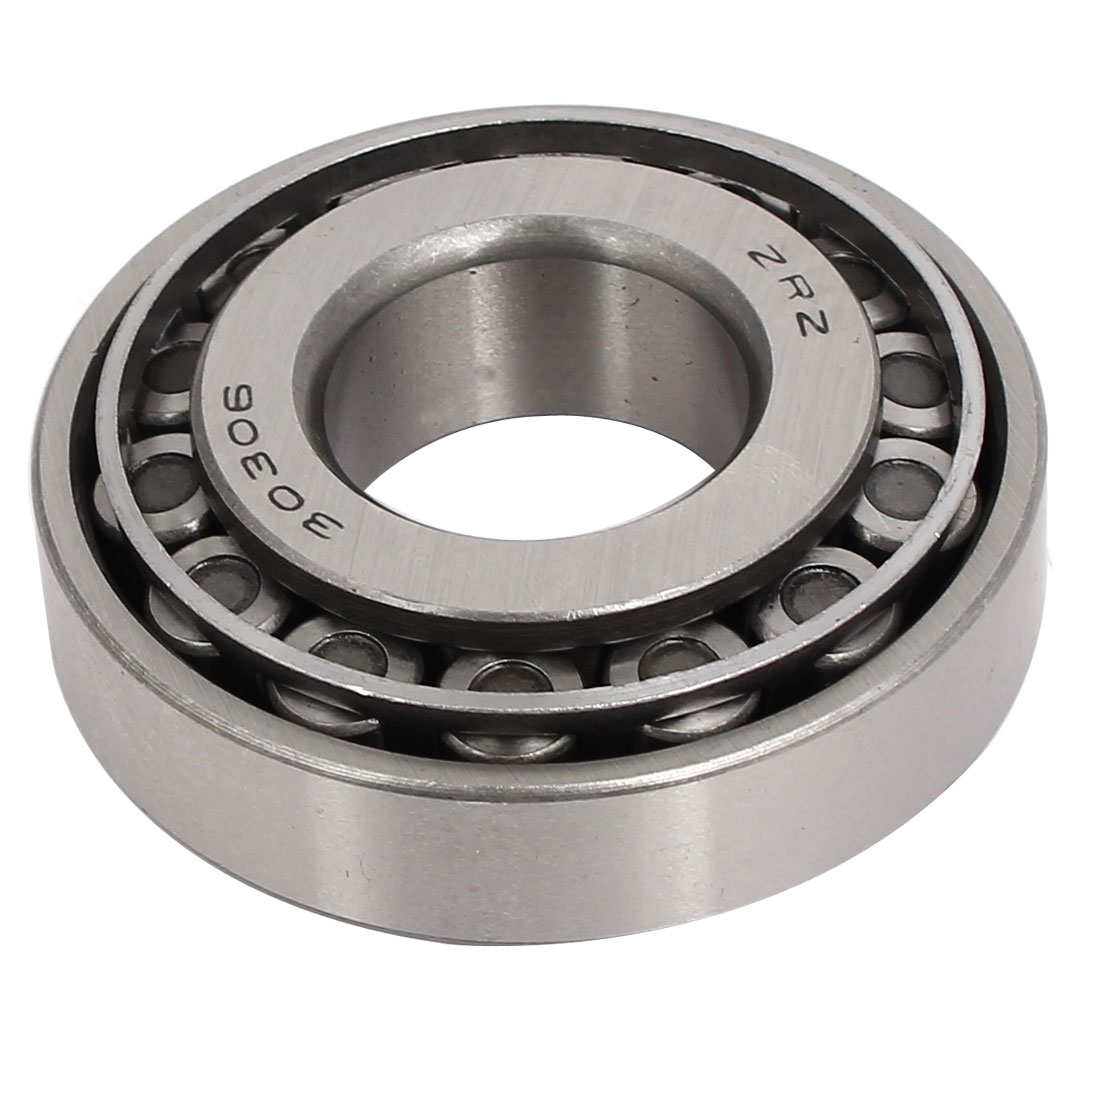 72mmx30mmx25mm 30306 Single Row Tapered Roller Bearing Silver Tone